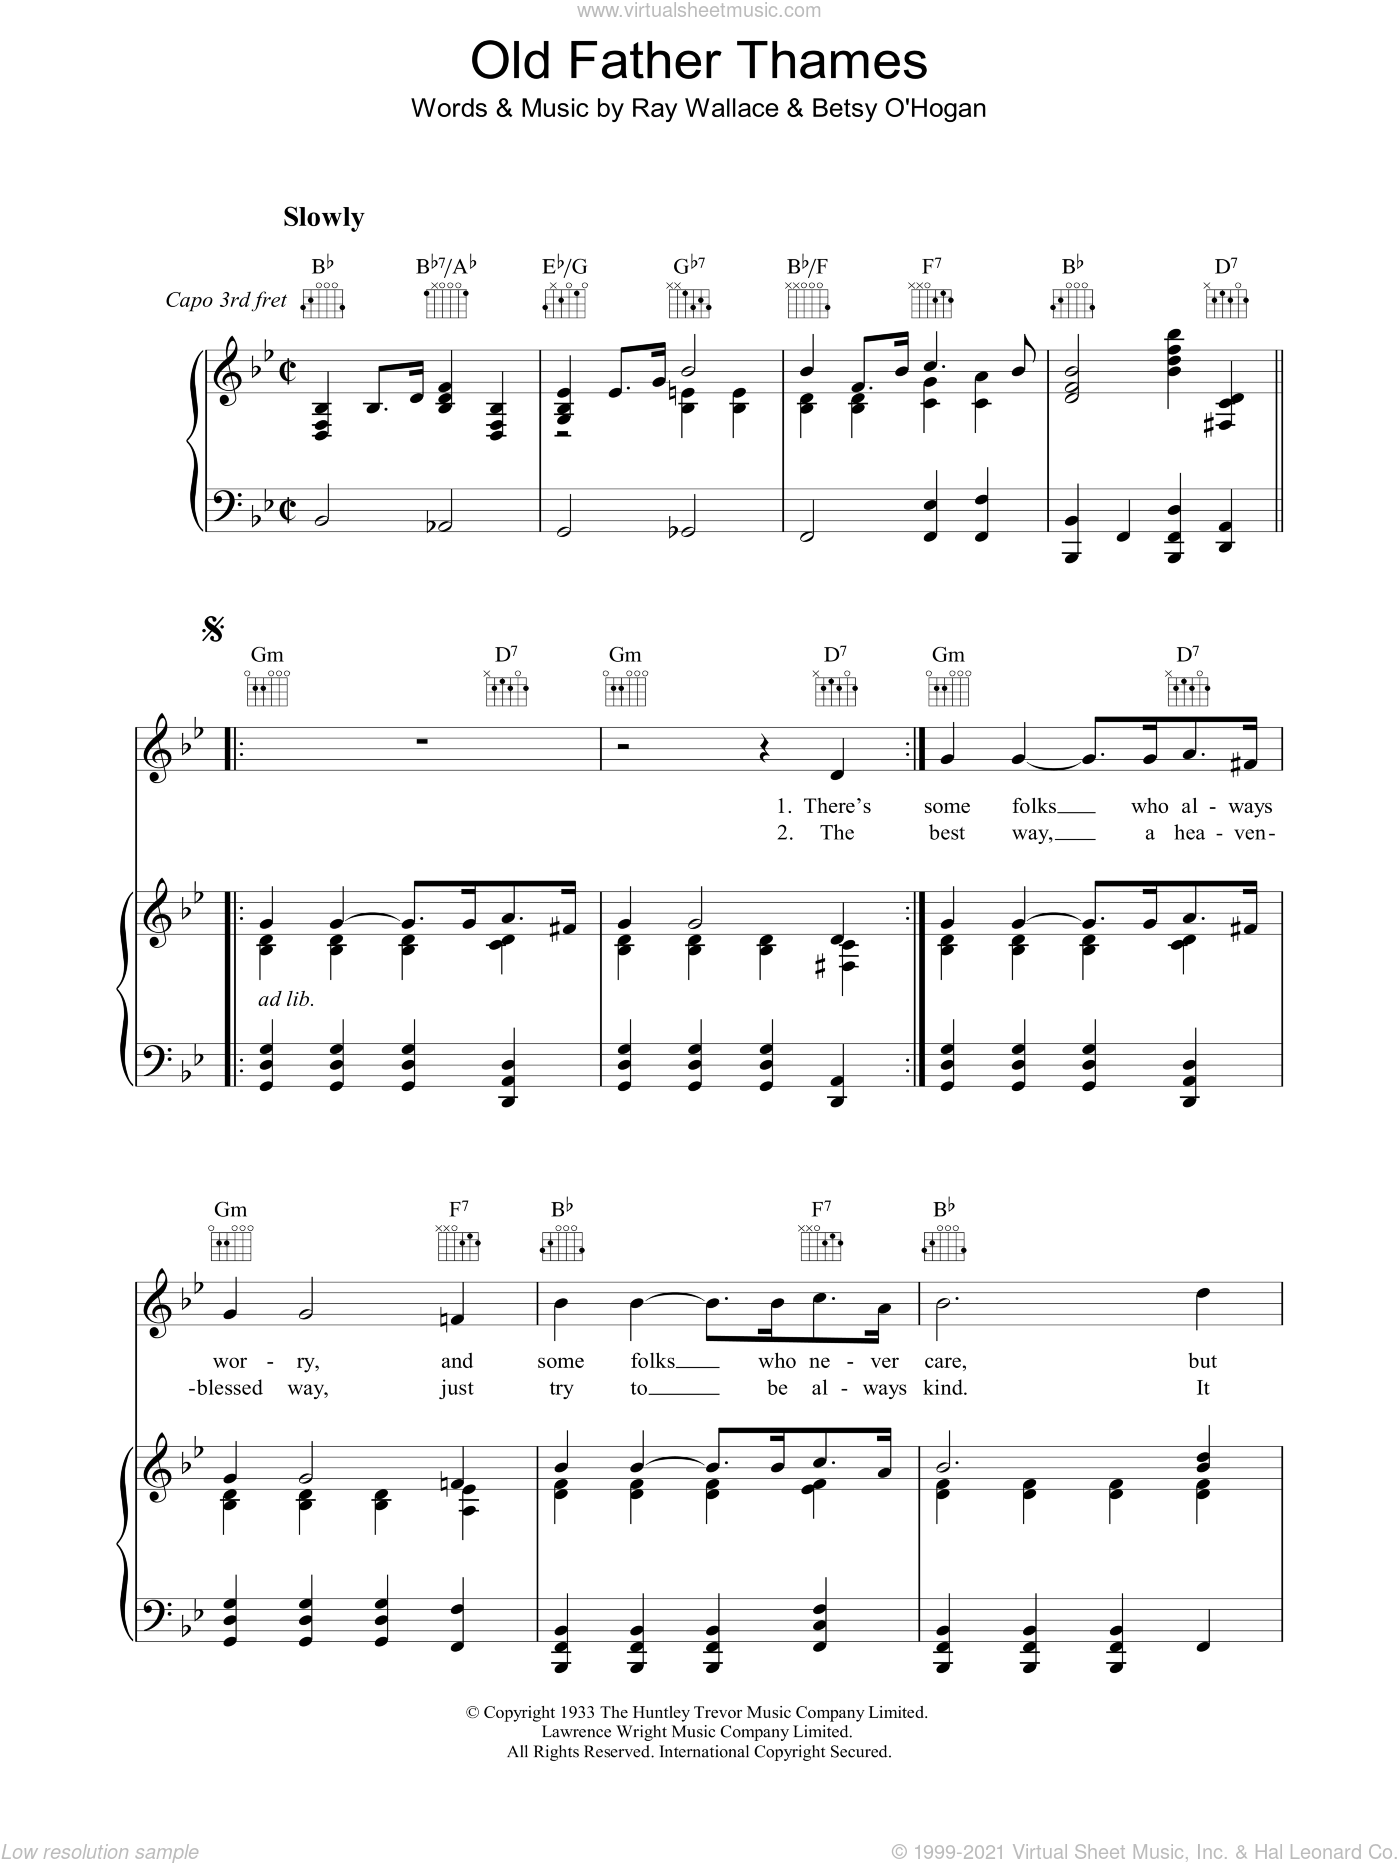 Old Father Thames (Keep Rolling Along ) sheet music for voice, piano or guitar by Betsy O'Hogan